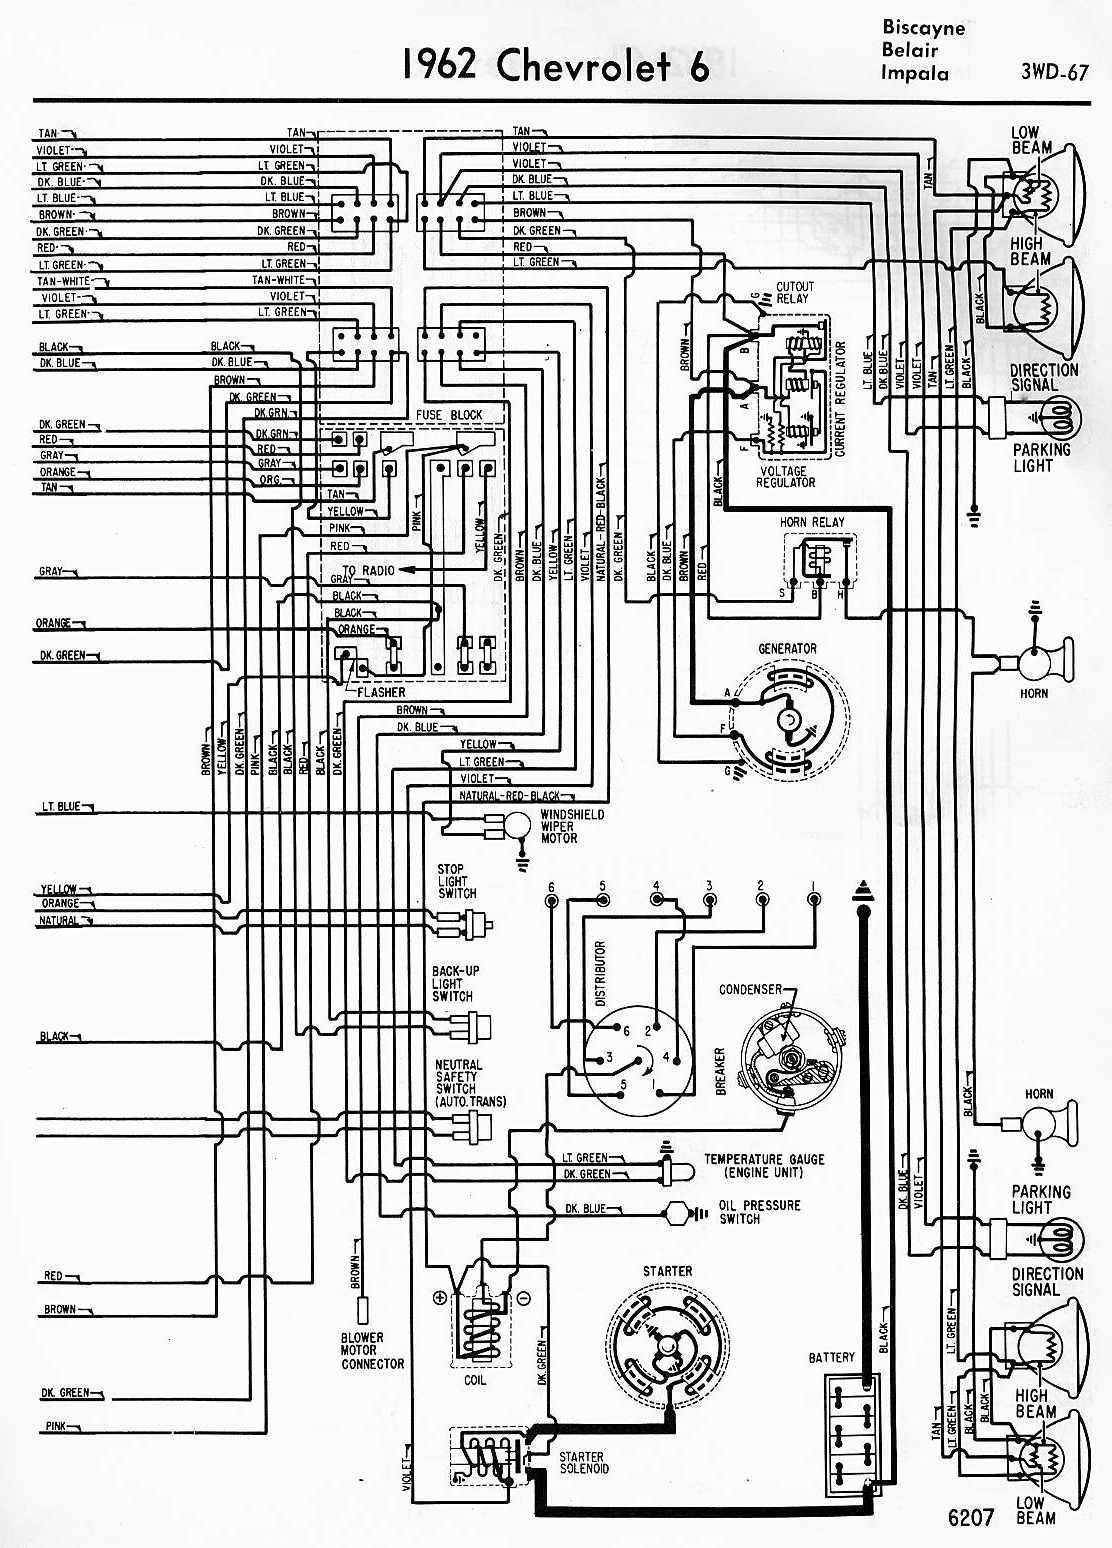 99 Mustang Automatic Transmission Wiring Harness Electrical 1964 Chrysler Schematic Impala Engine Diagram Electricity Ford Kits 1998 Buick Wiper